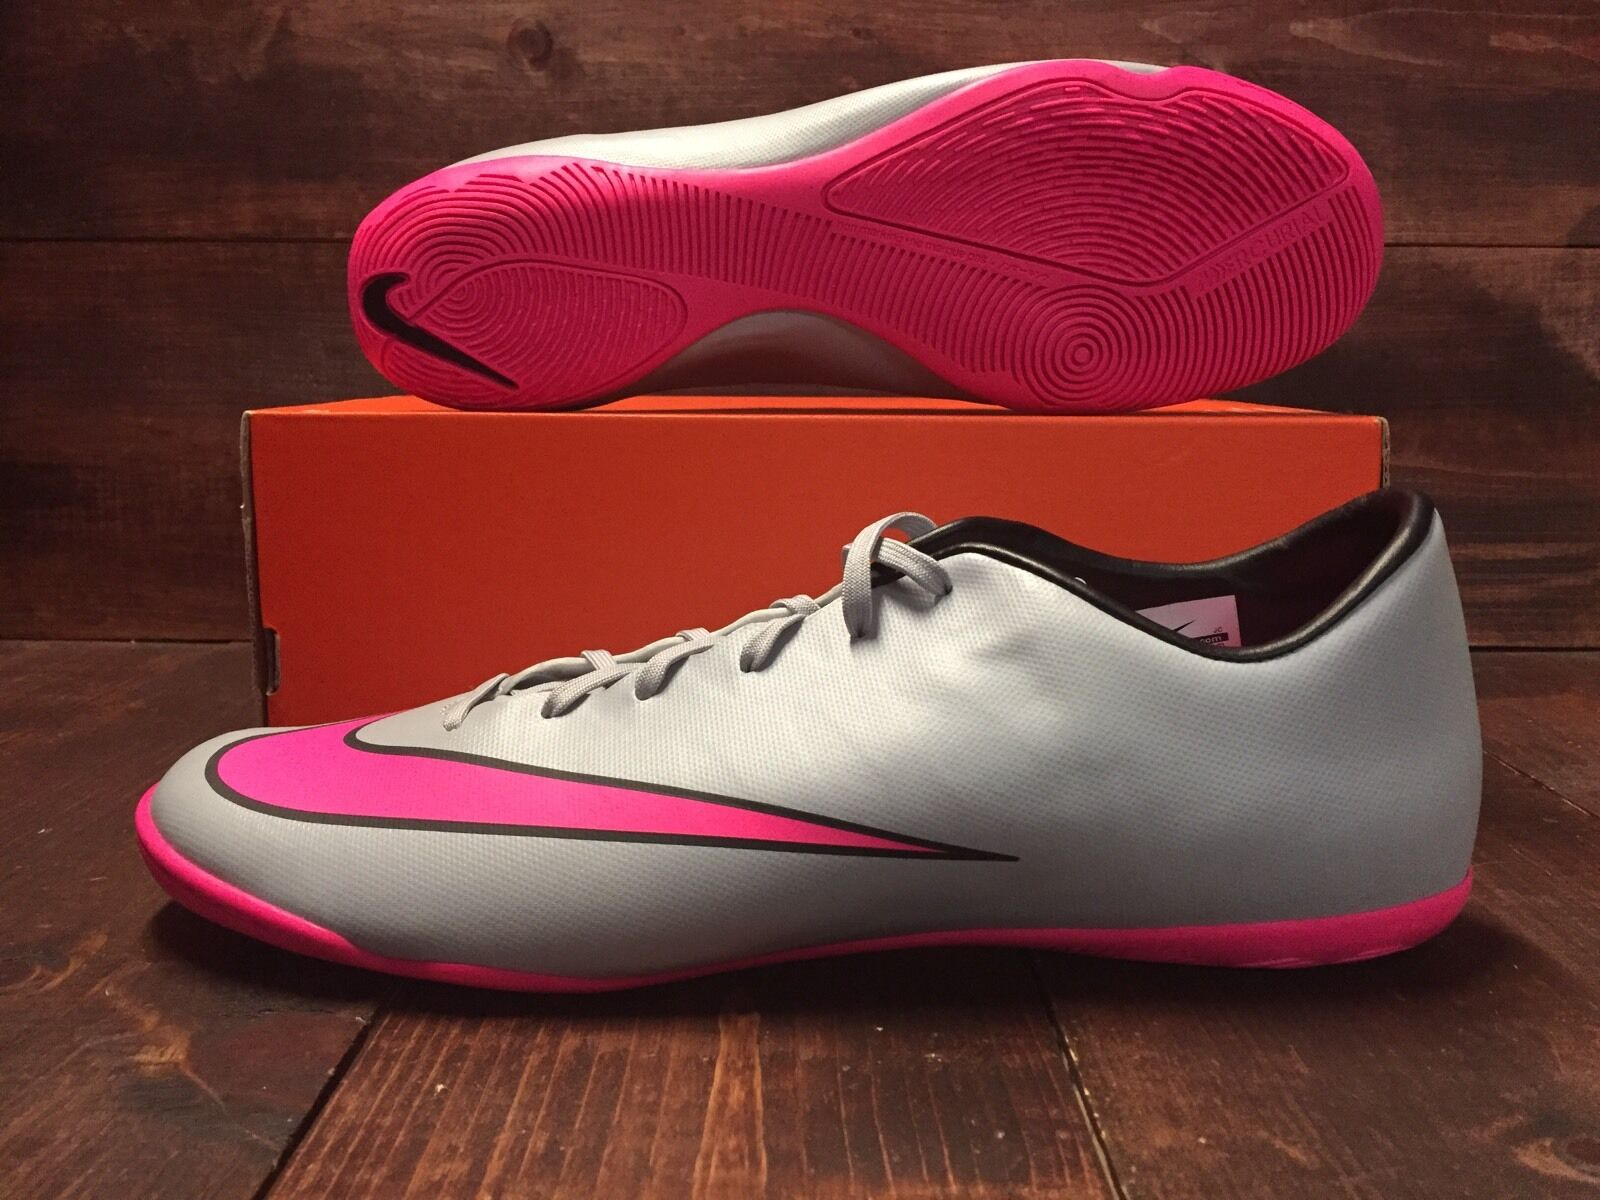 864fbc4e7 ... authentic nike mercurial victory v 5 ic soccer shoes grey hyper pink sz  13 651635 060